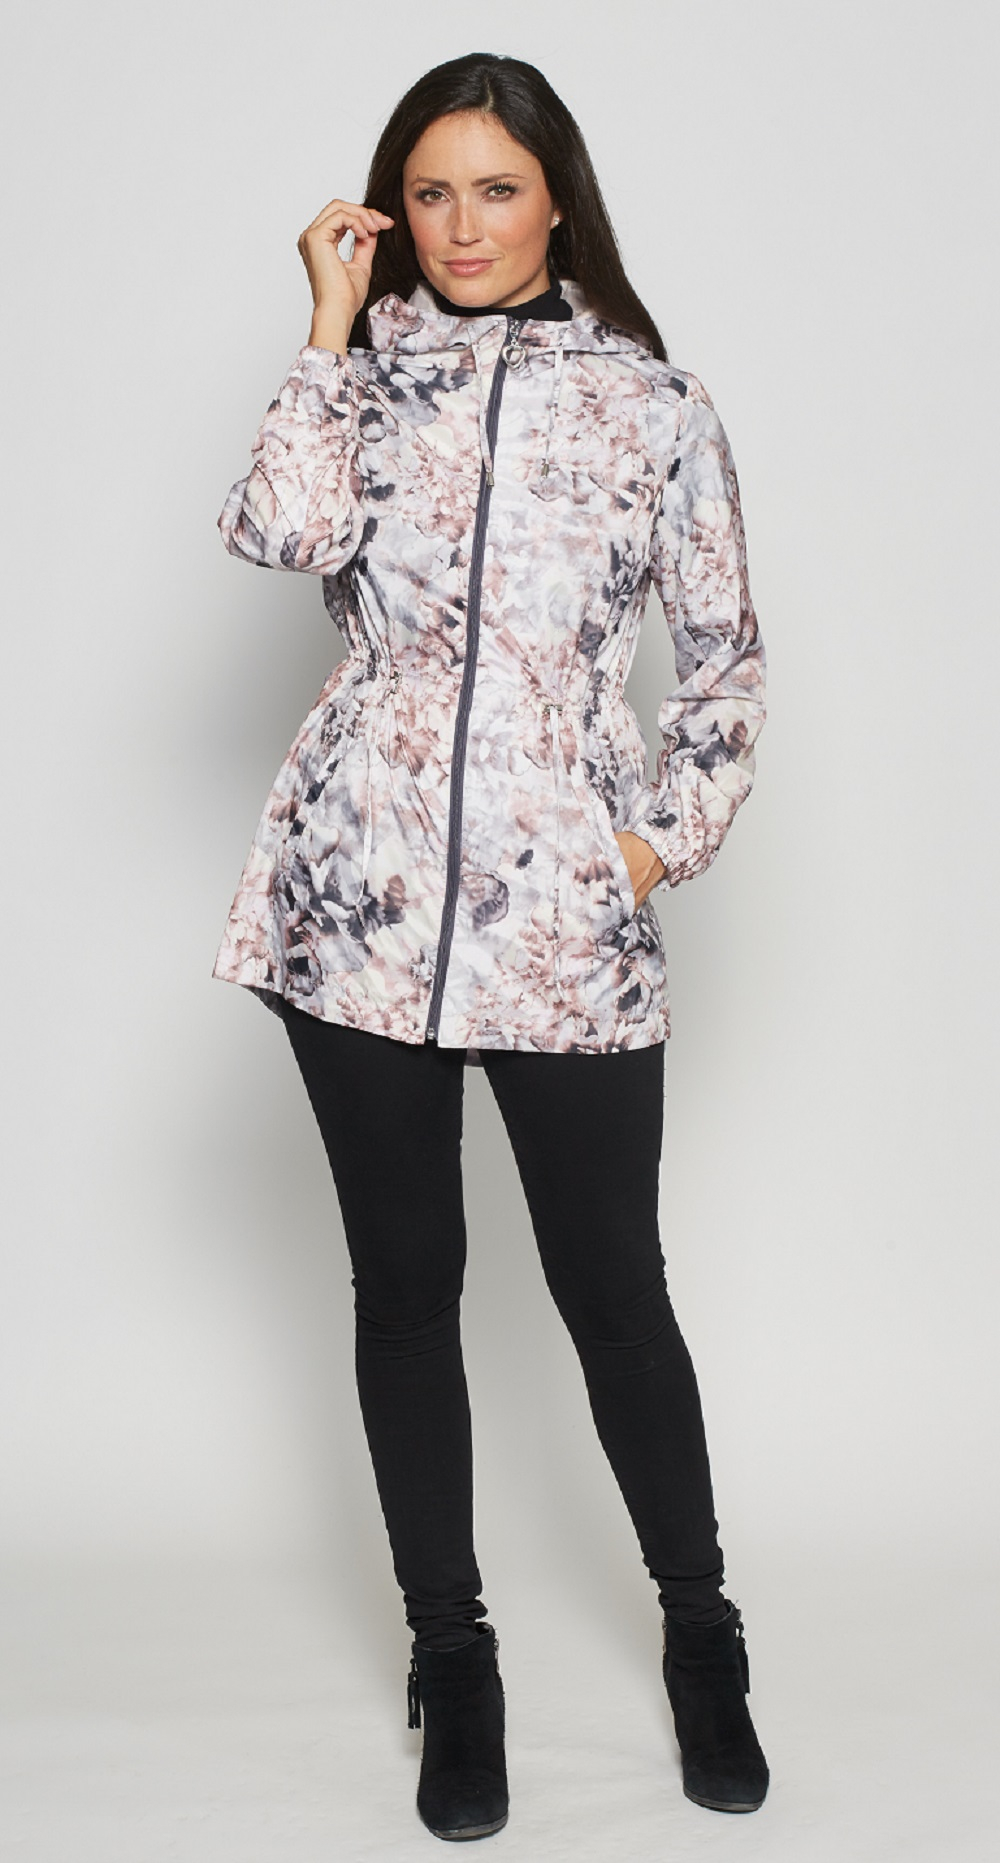 David Barry - Womens Lightweight Print Travel Jacket